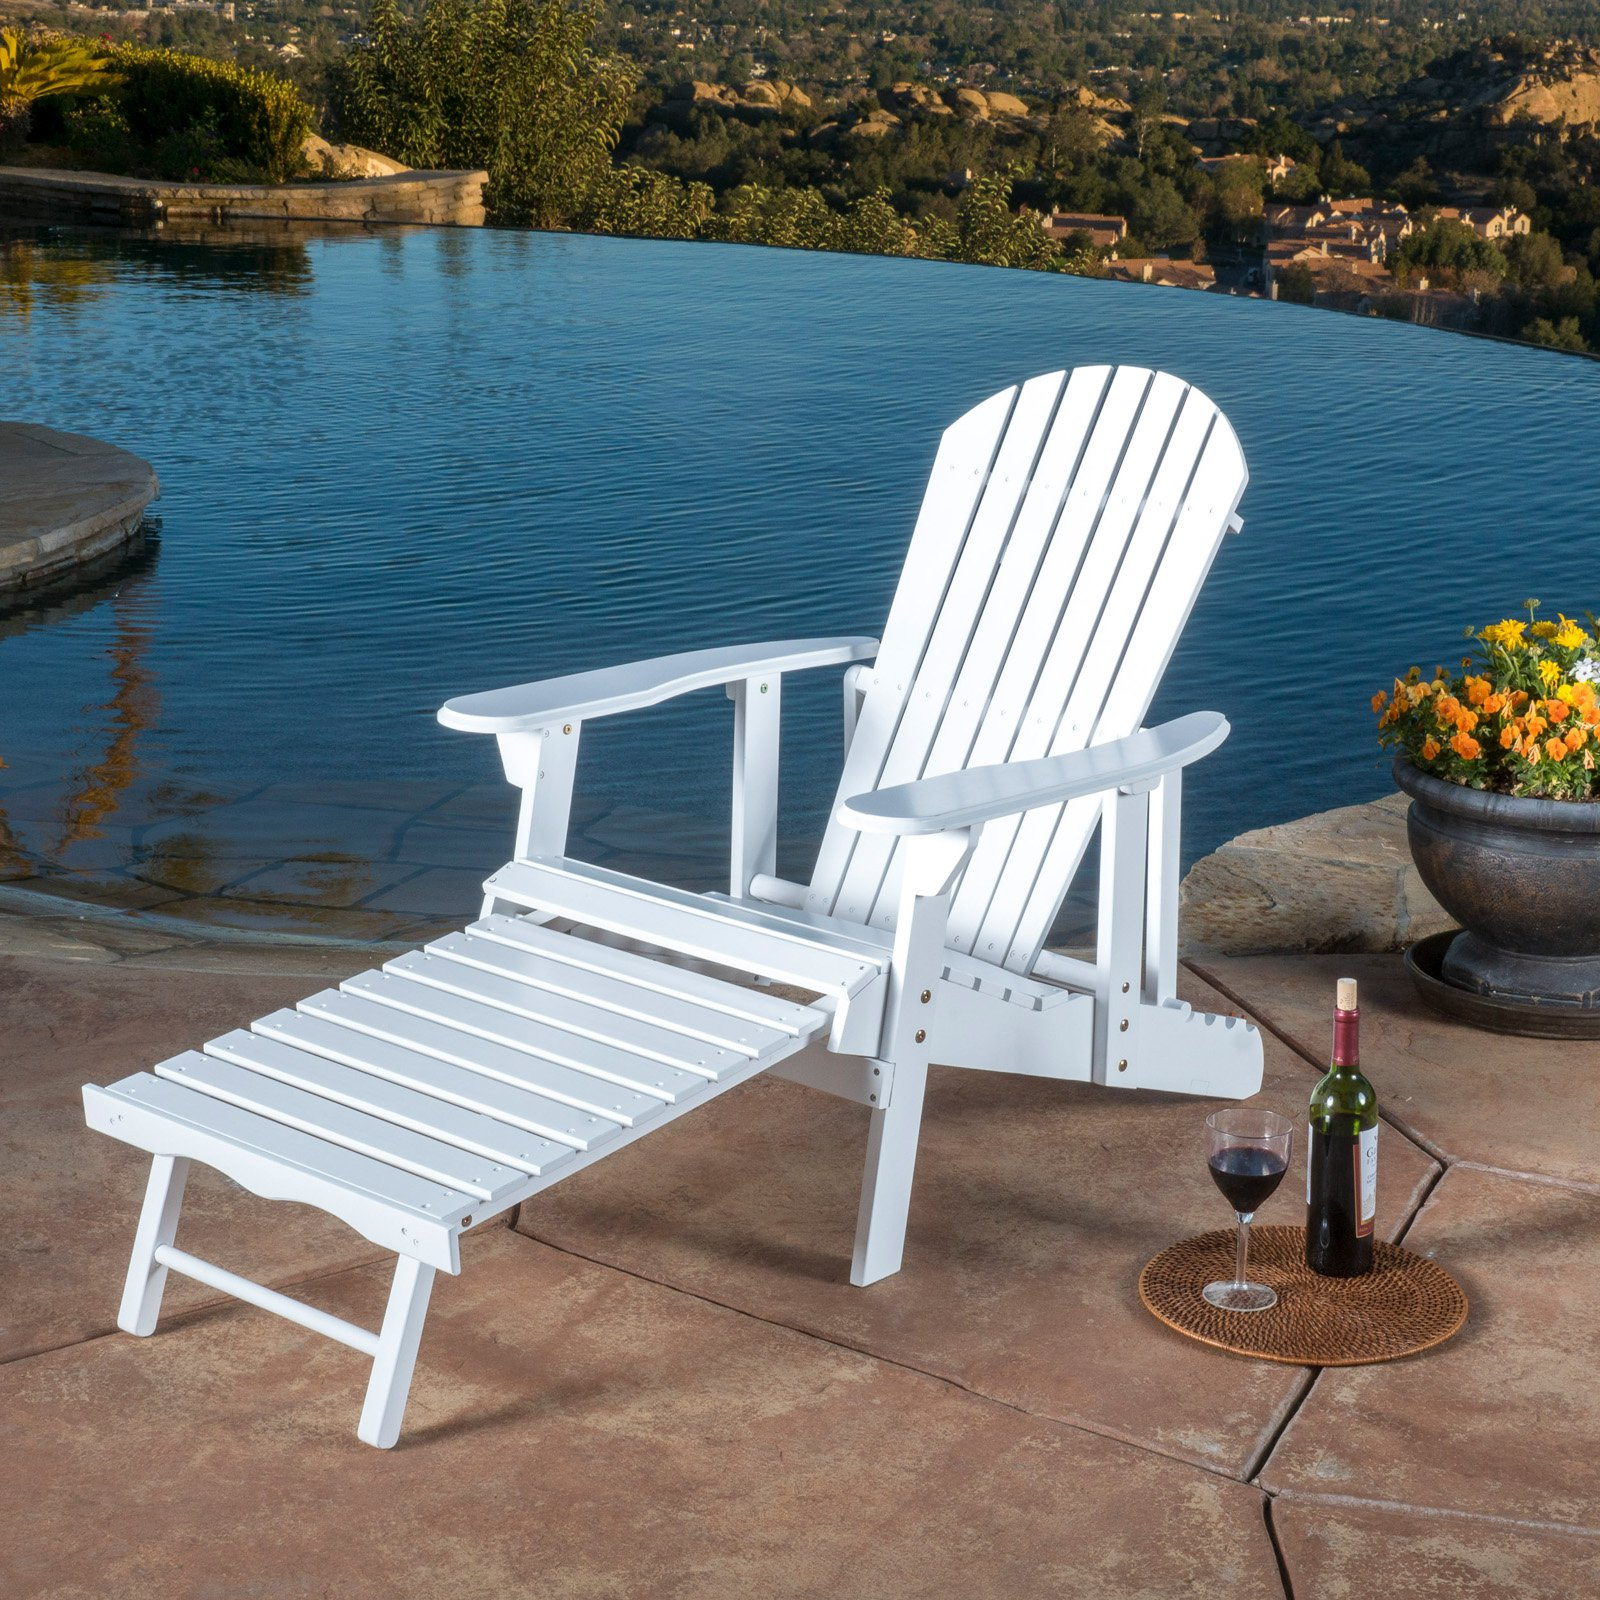 Outdoor Hayle Reclining Adirondack Chair with Footrest